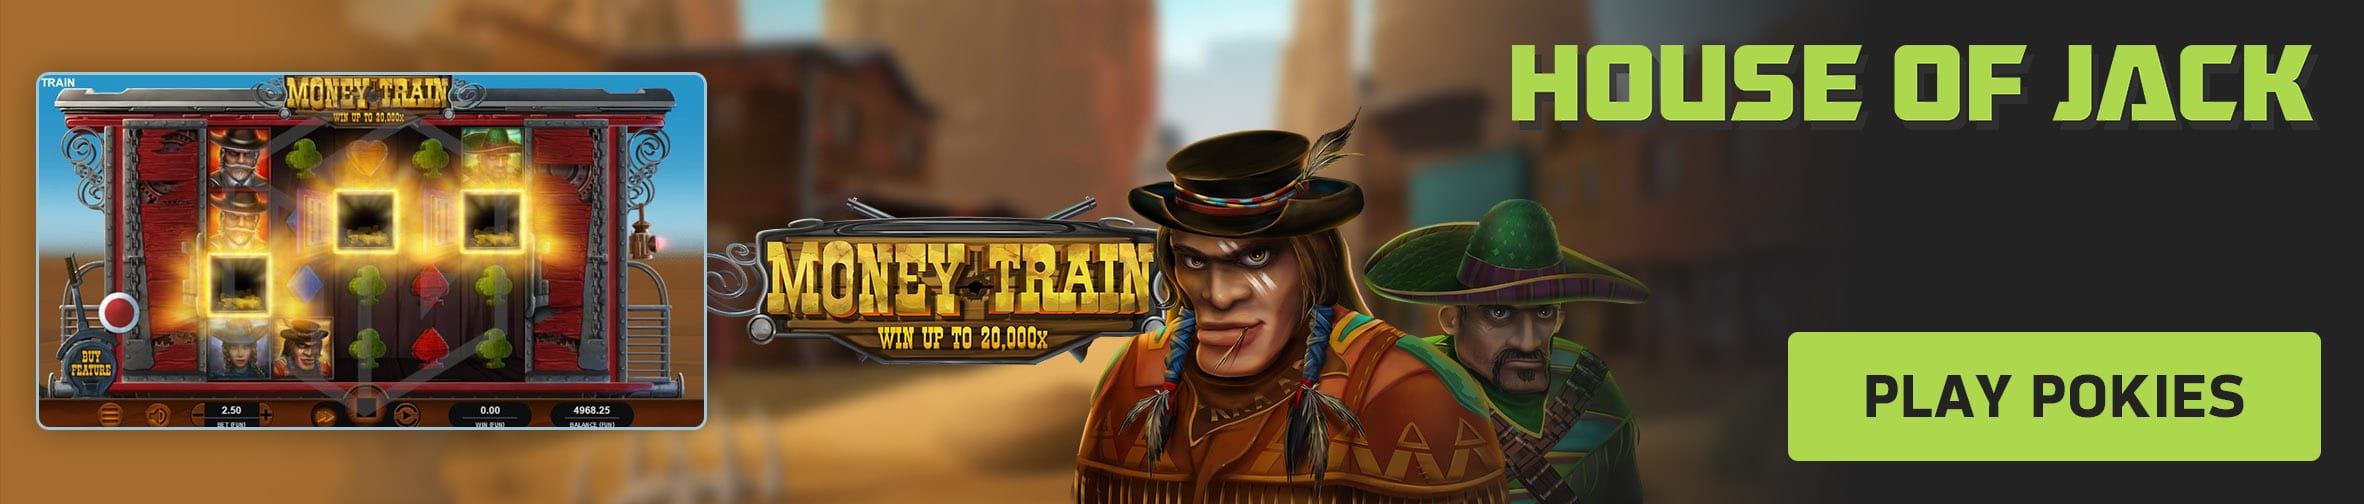 Play slots like Money Train at House of Jack Online Casino